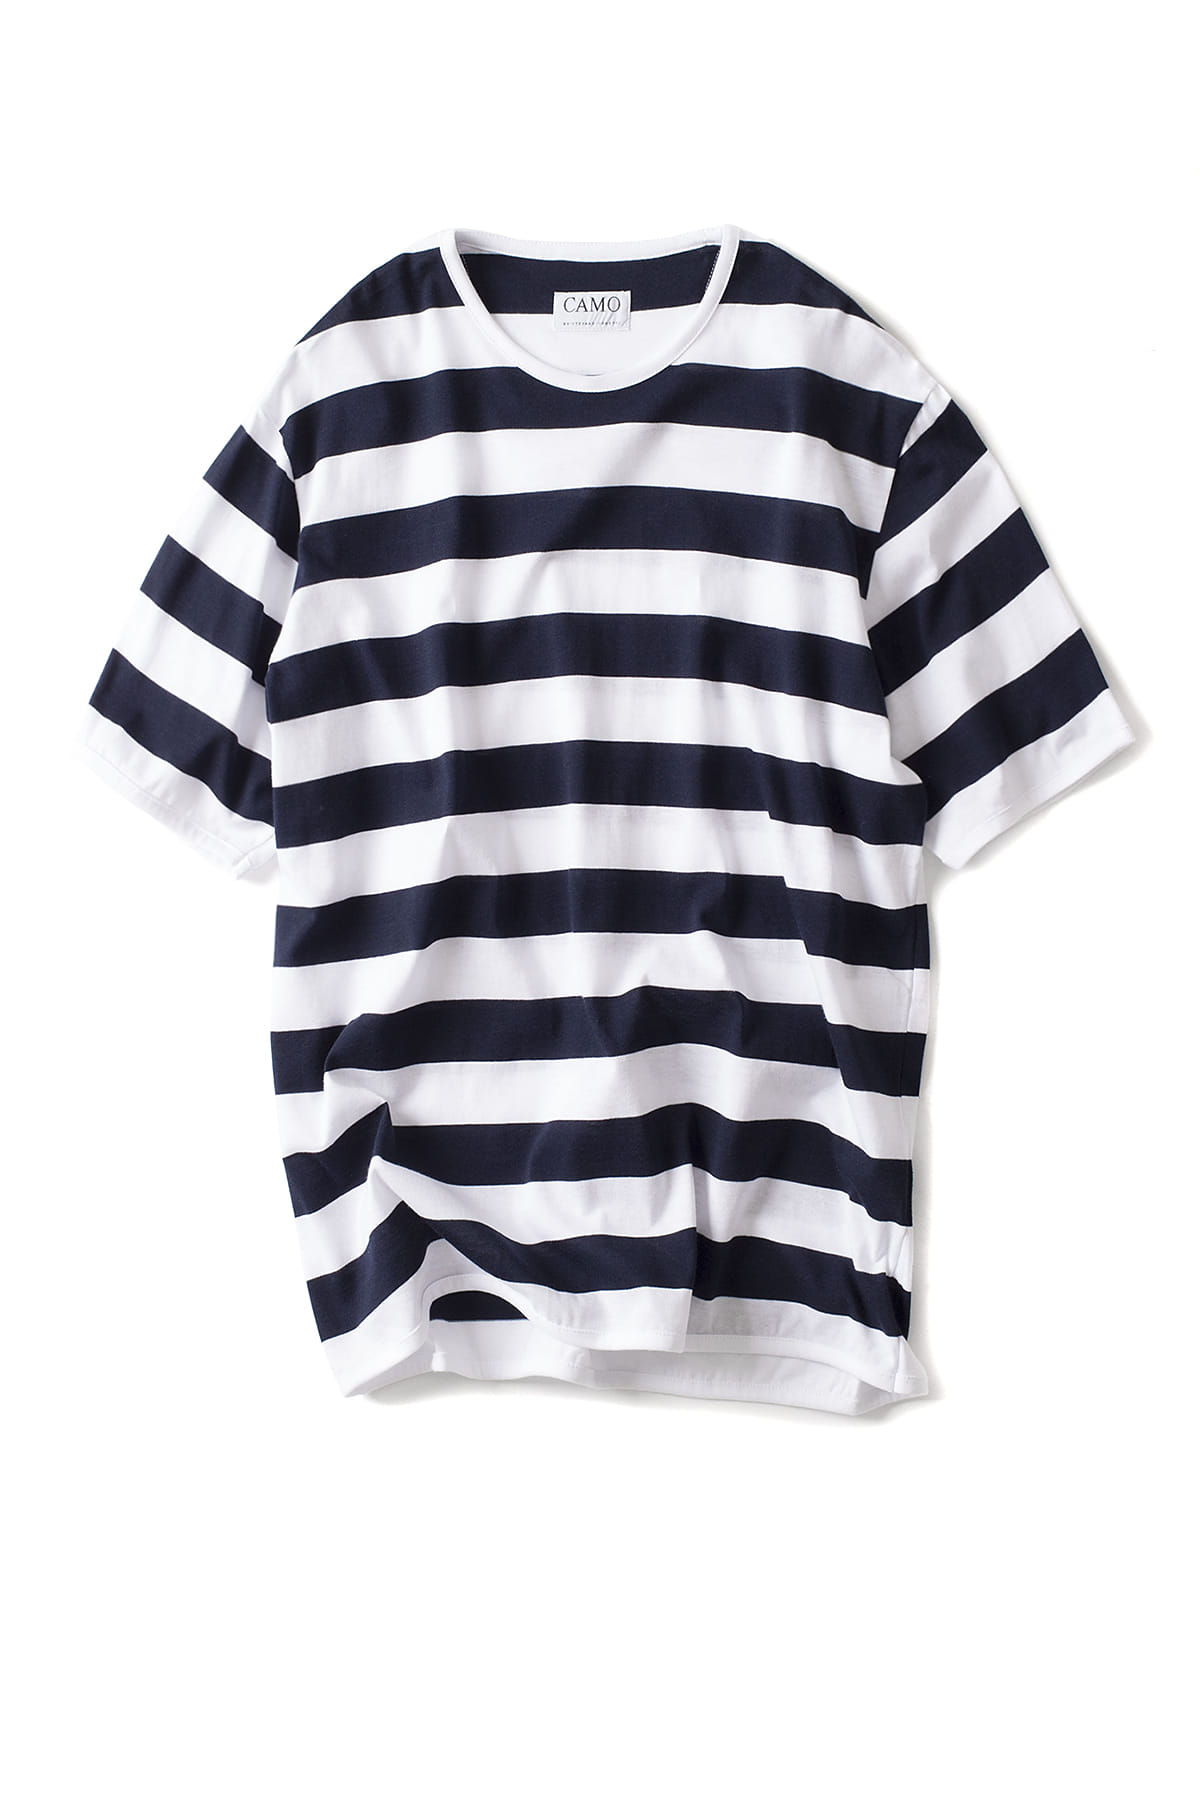 CAMO : Original - New Basic T-Shirt (Striped Jersey White/Navy)